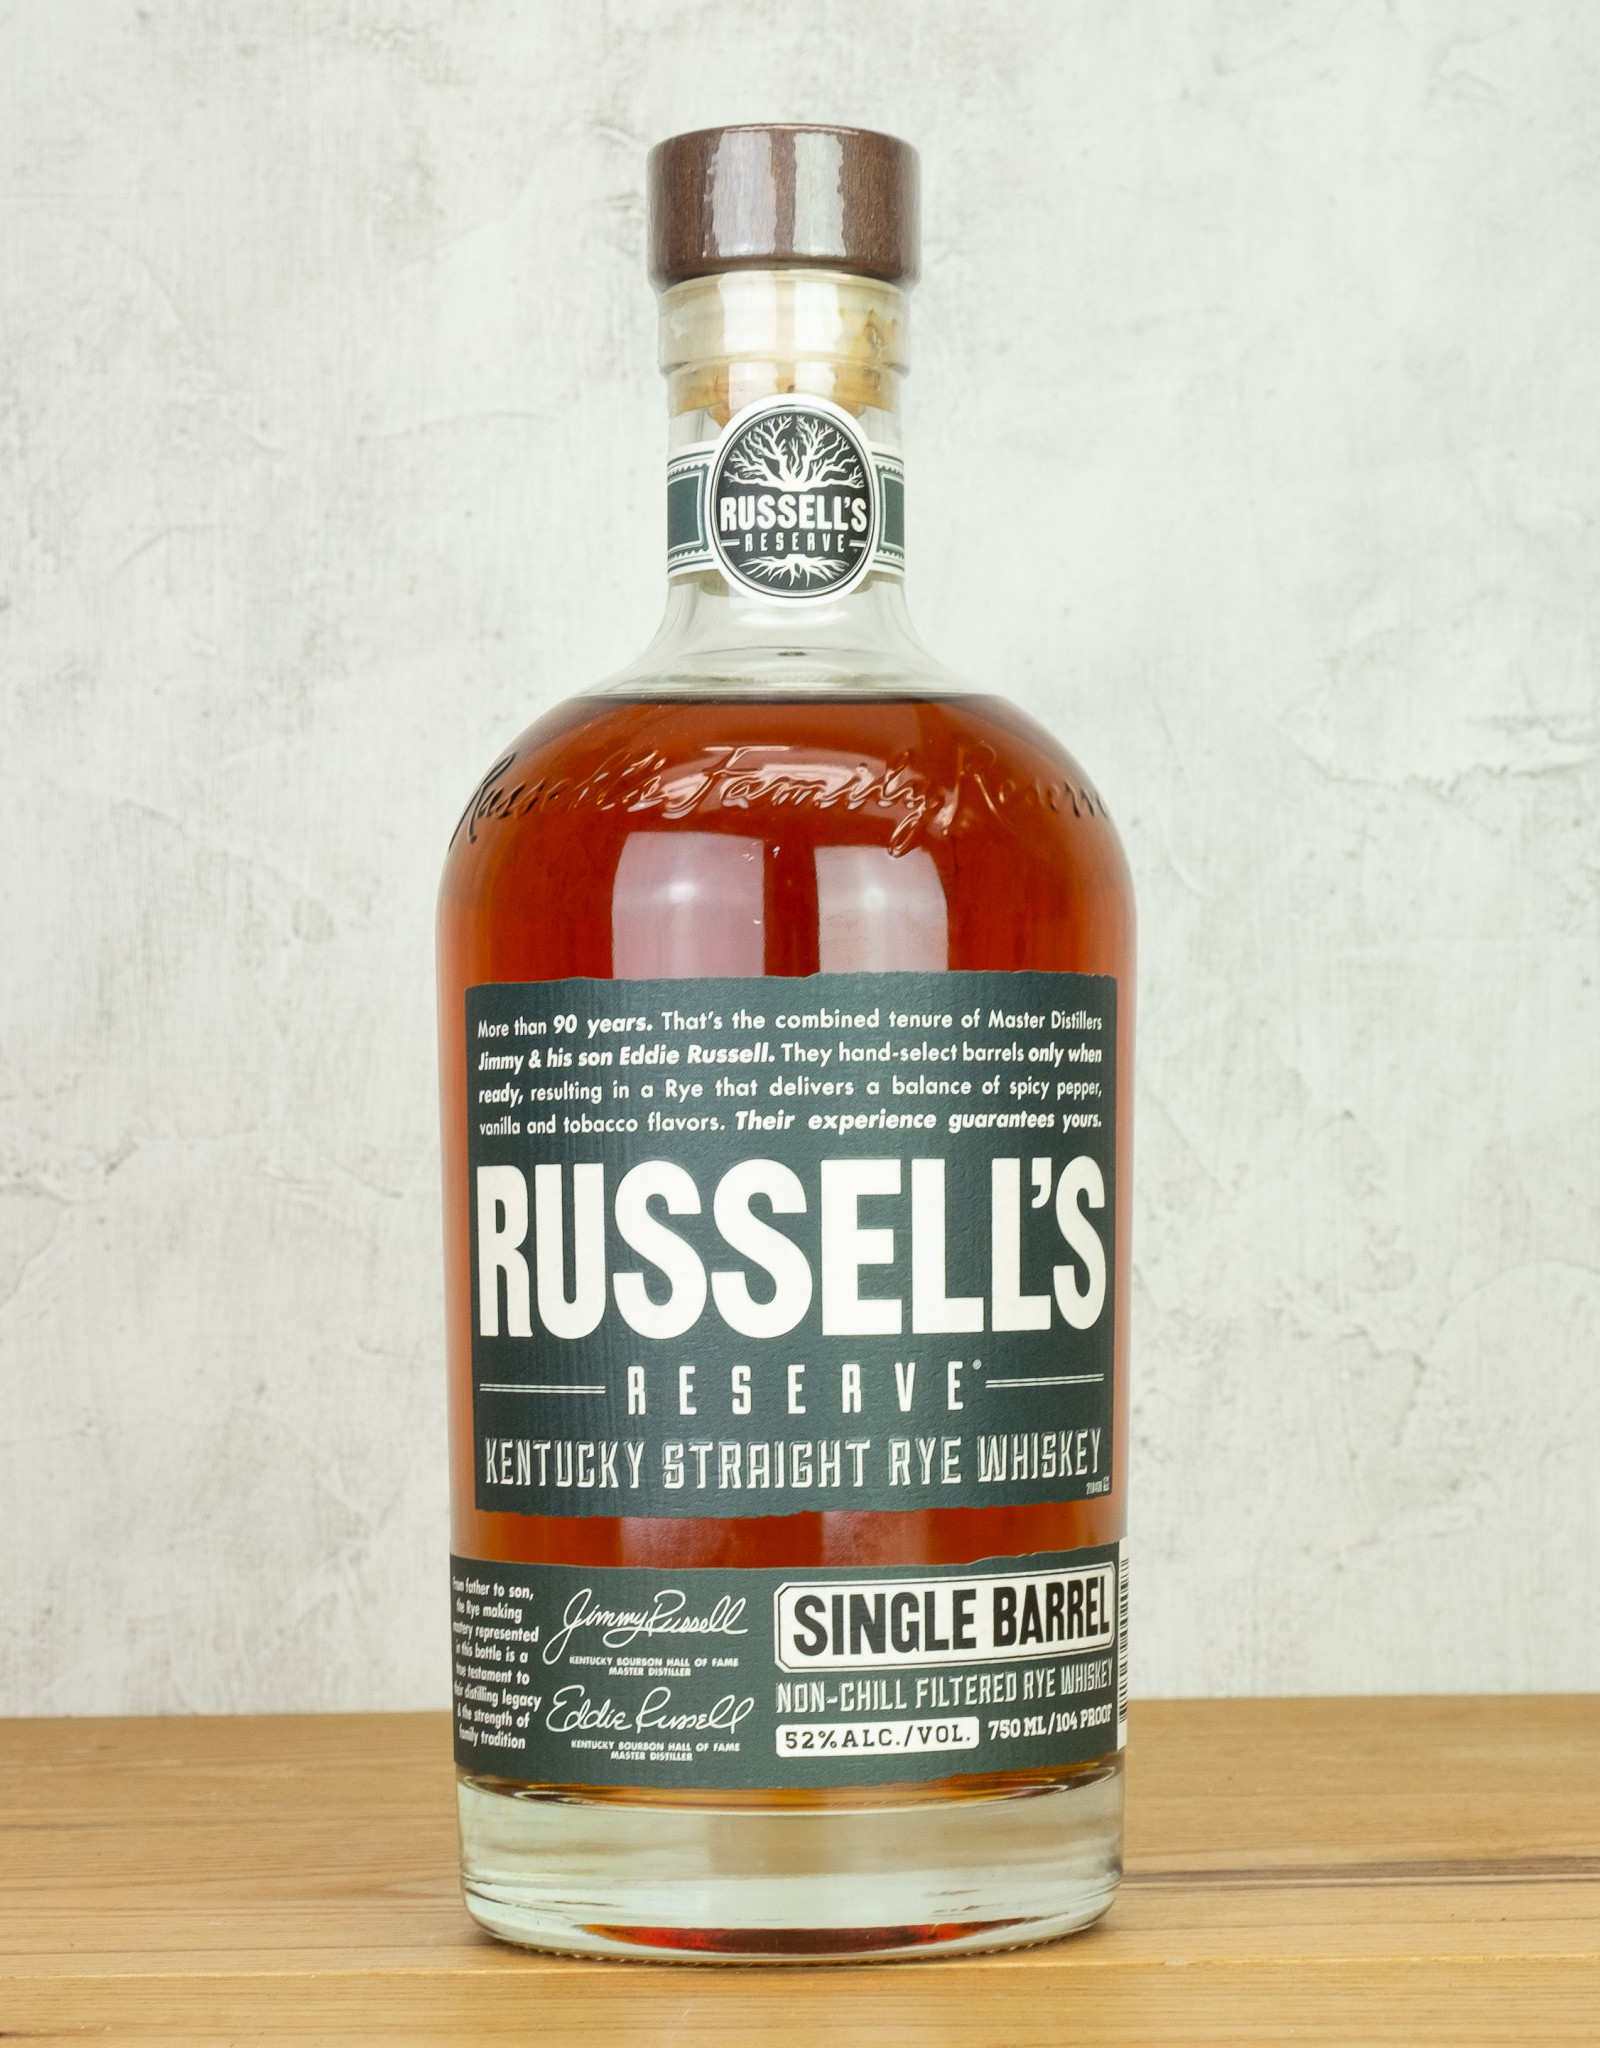 Russell's Reserve Rye Single Barrel